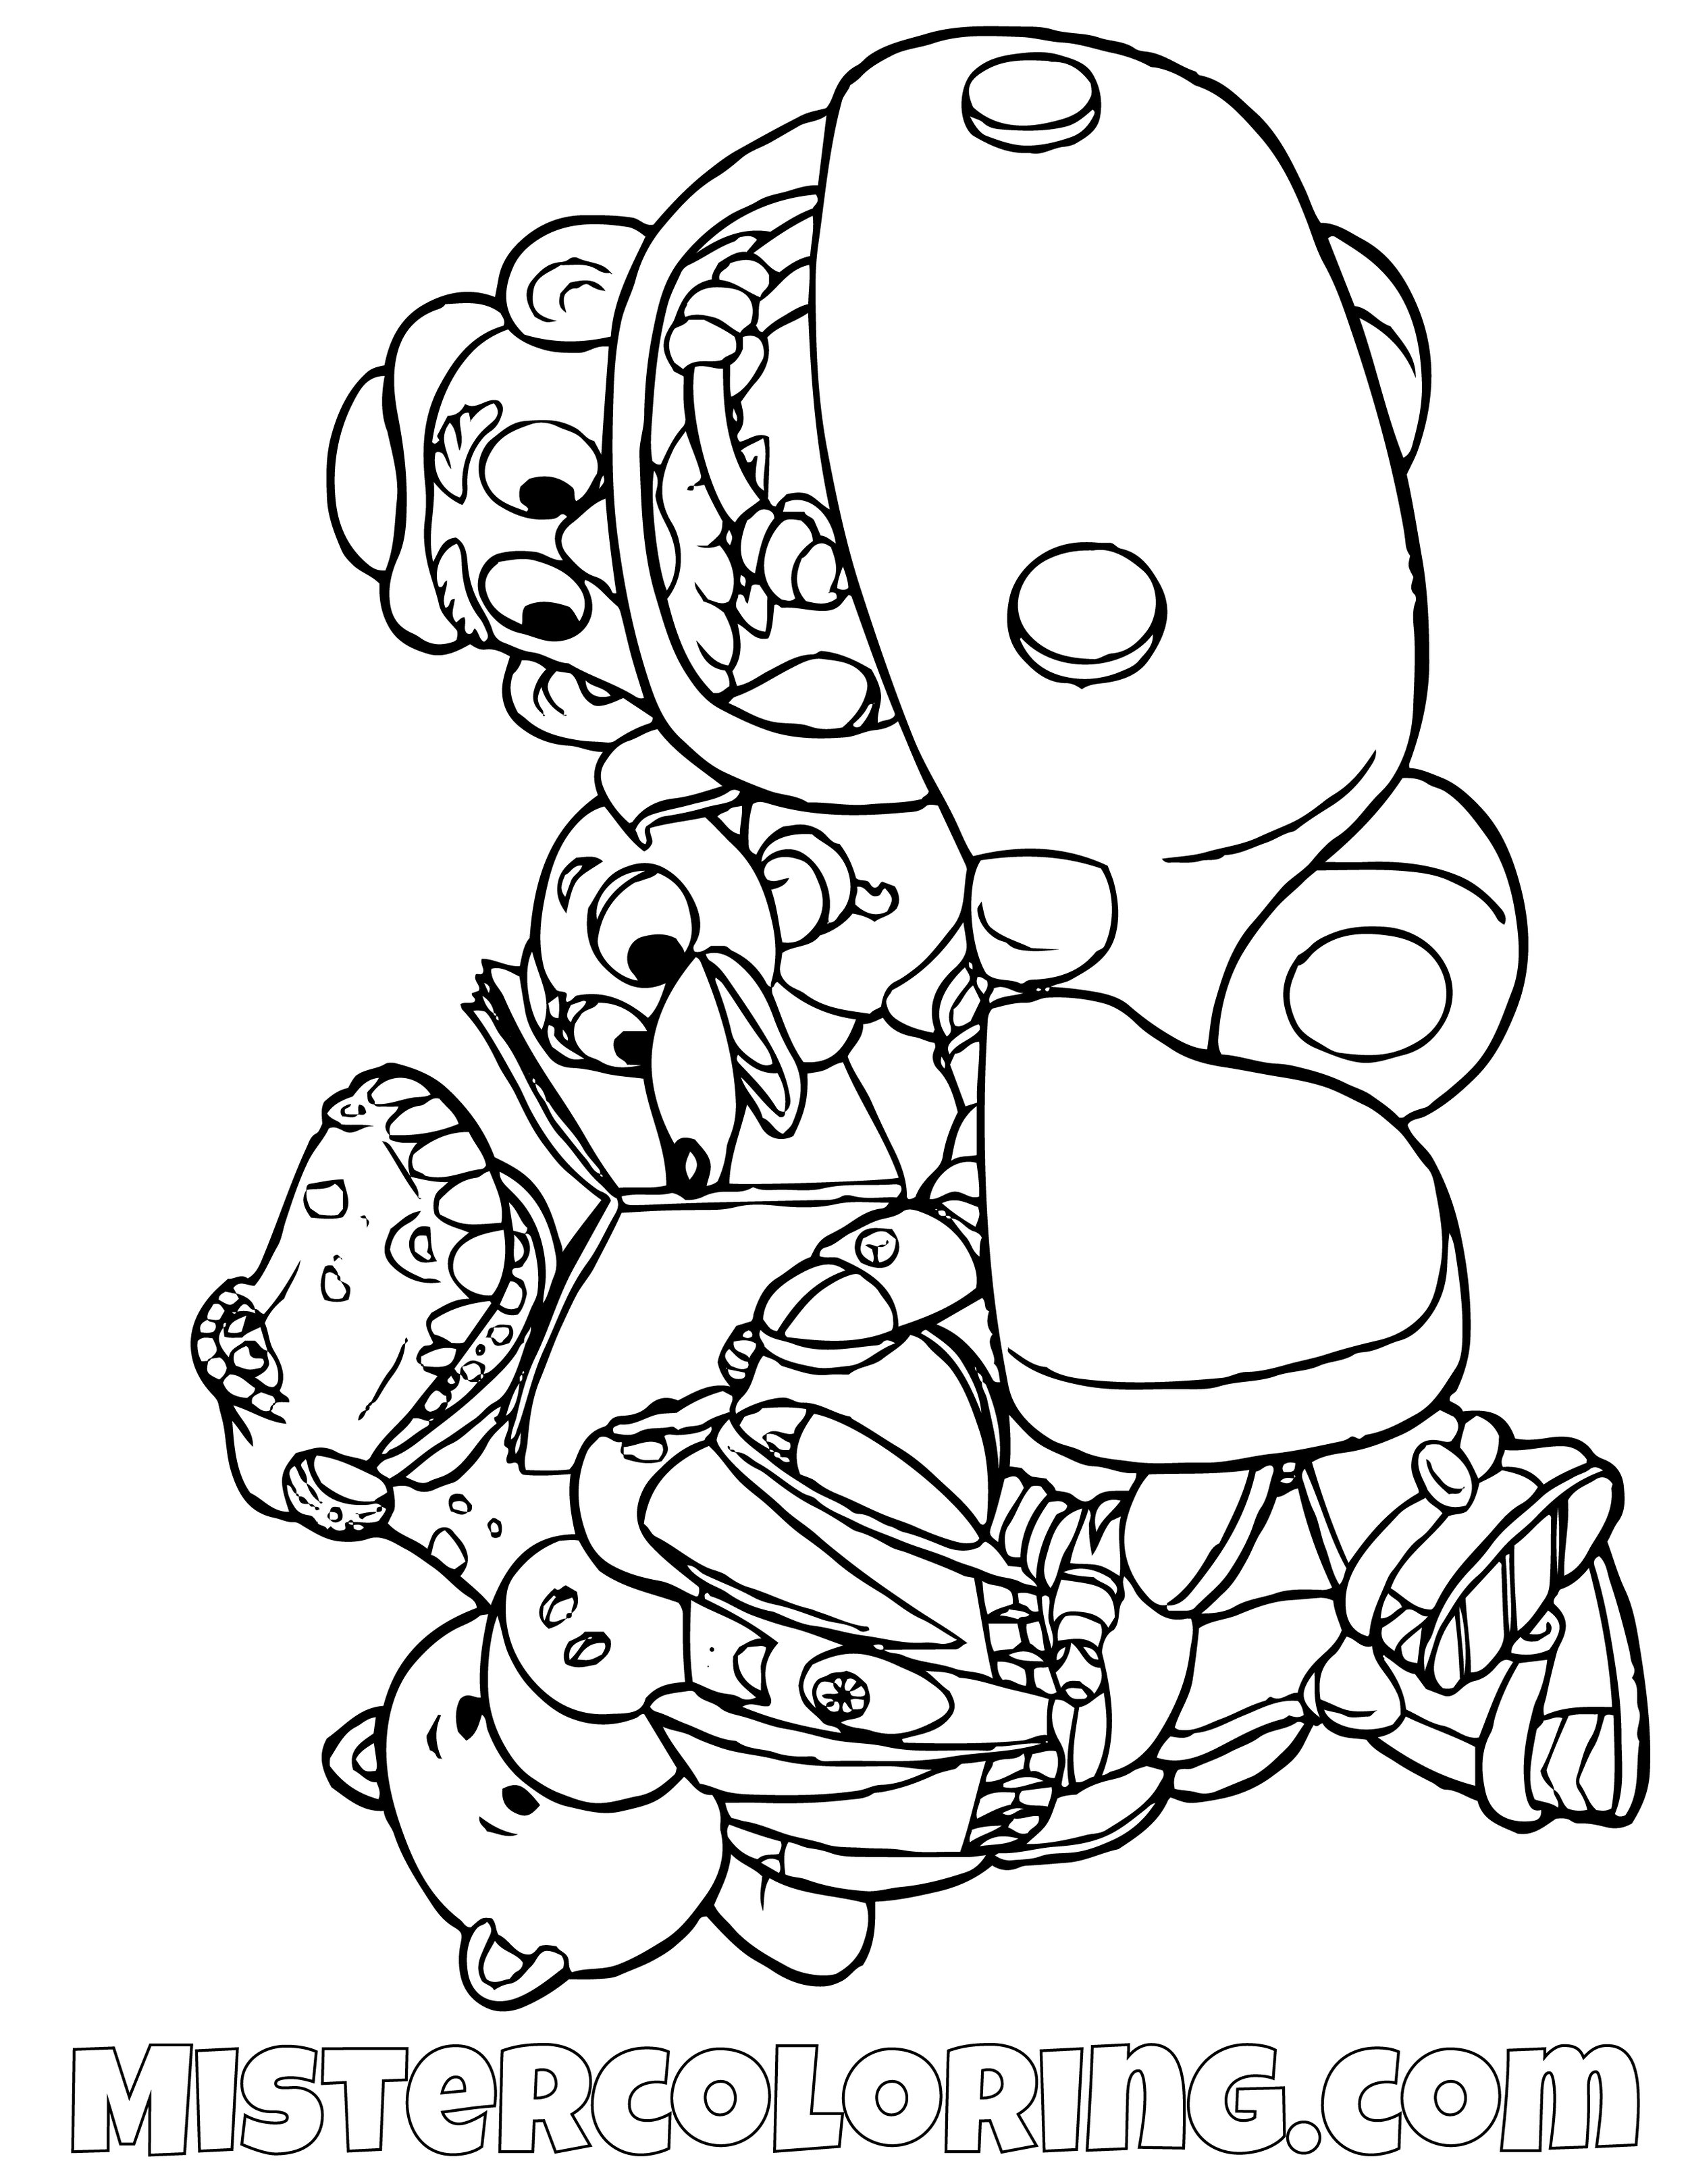 Rex Ham Slinky Dog Mr Potato Head Buzz Lightyear Riding A Car Toy Story Coloring Page